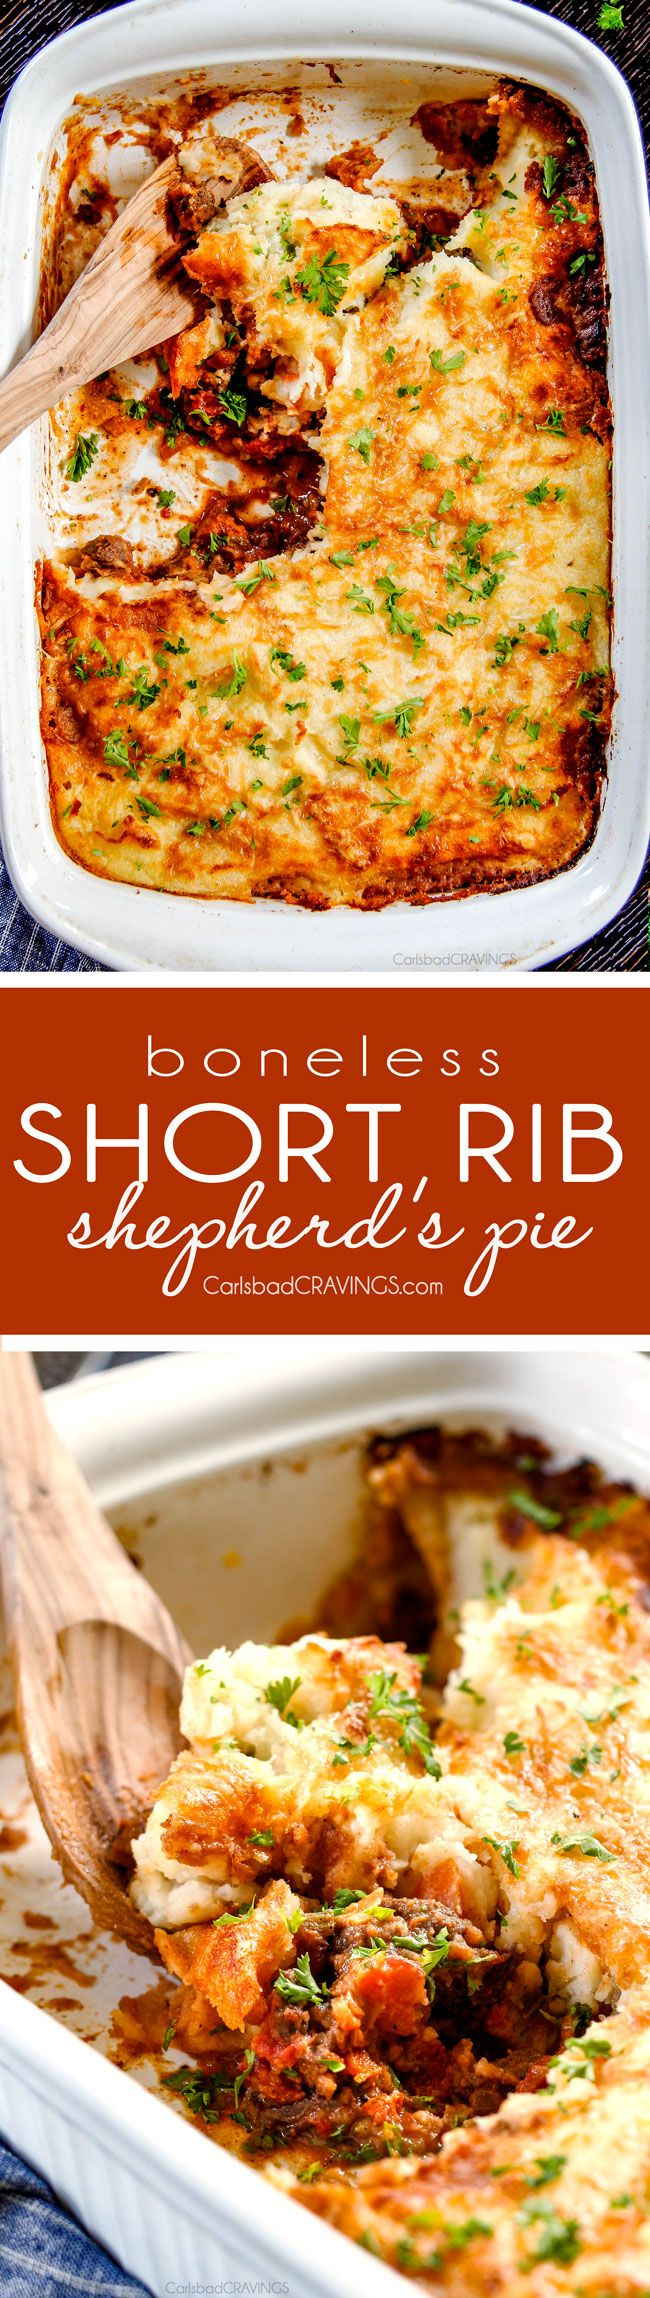 The best Shepherd's Pie!!! Savory, comforting Boneless Short Rib Shepherd's Pie elevates shepherd's (or cottage pie) to a whole new level with melt in your mouth meat and Swiss Gruyere Mashed Potatoes! This is guaranteed to be a new family favorite!!! via @carlsbadcraving